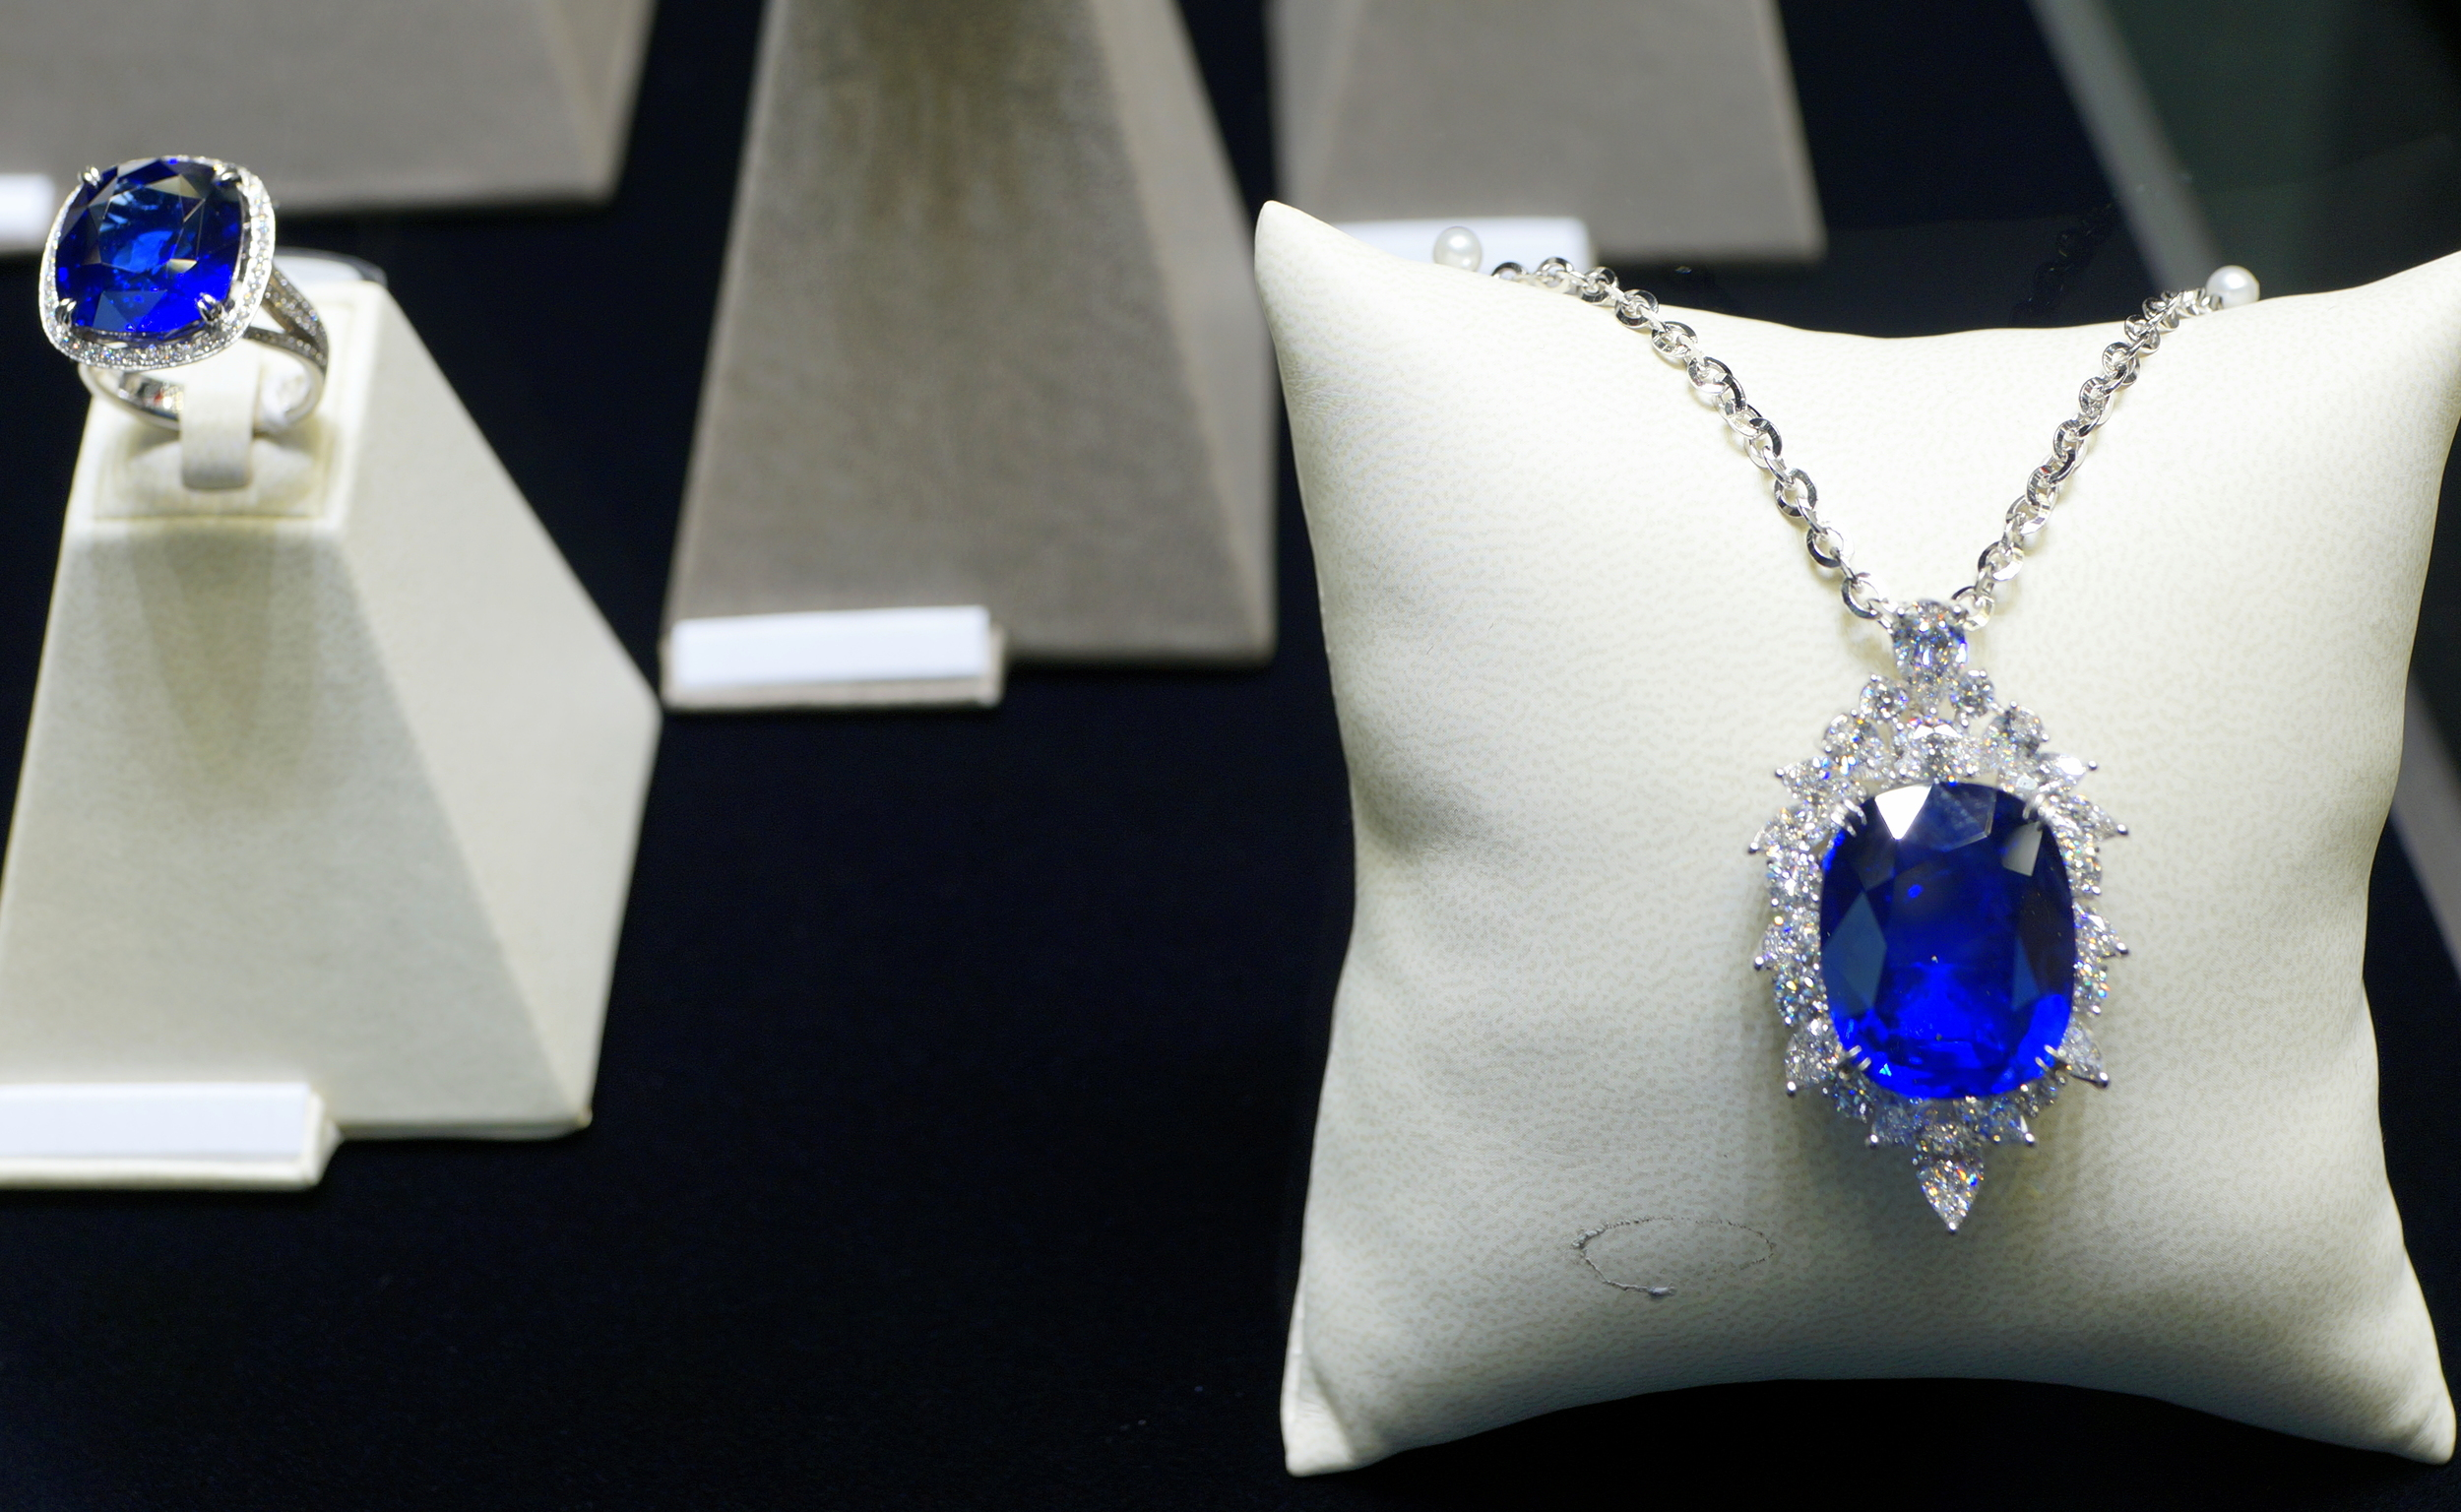 Chow Tai Fook do NOT sell cheap jewellery, the diamond and sapphire necklace is priced at over US$1.3 million!